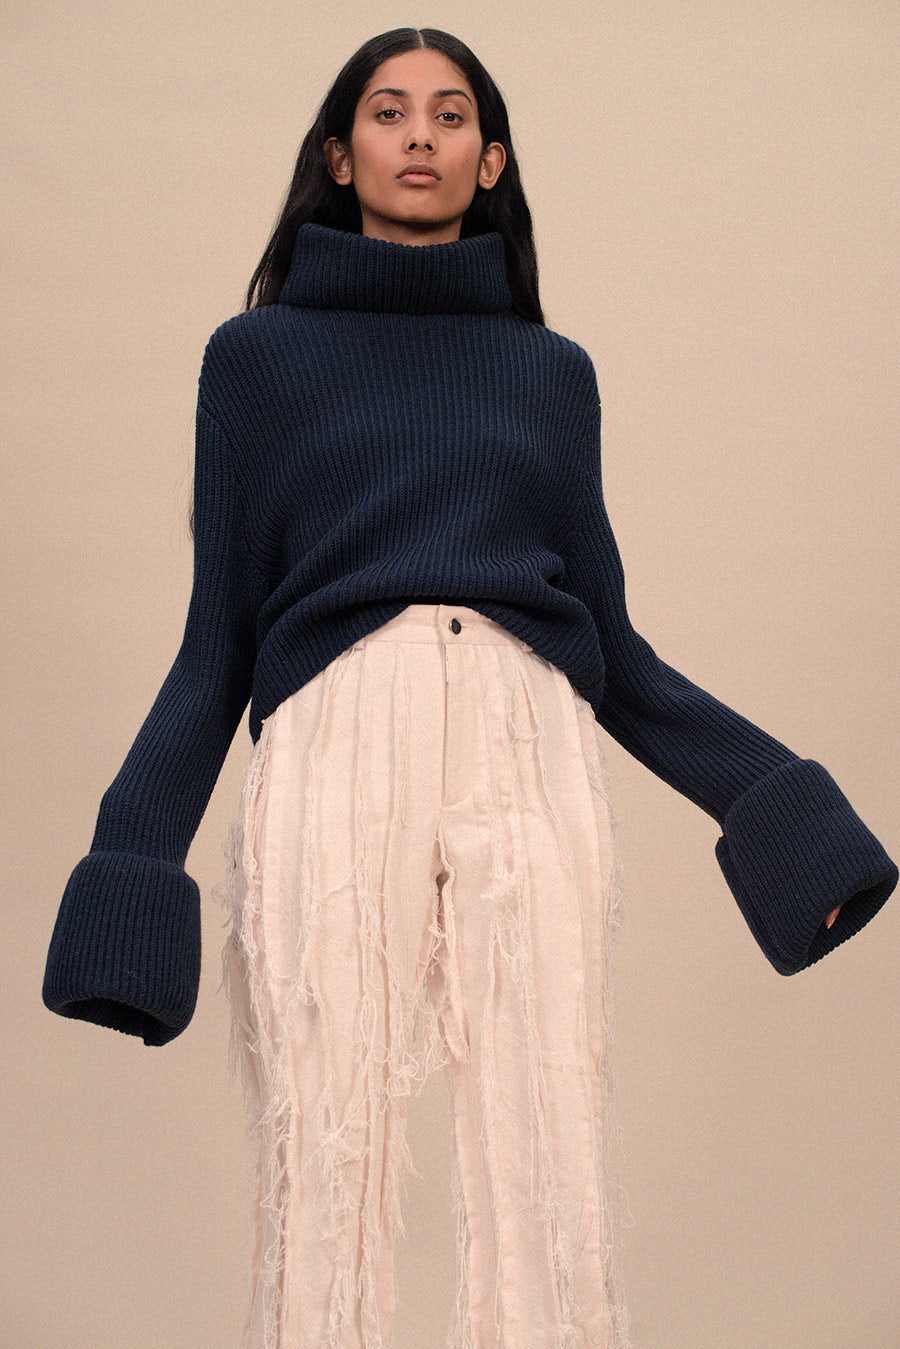 HIGH NECK SWEATER WITH CUFFED SLEEVES - AVAILBLE SOON